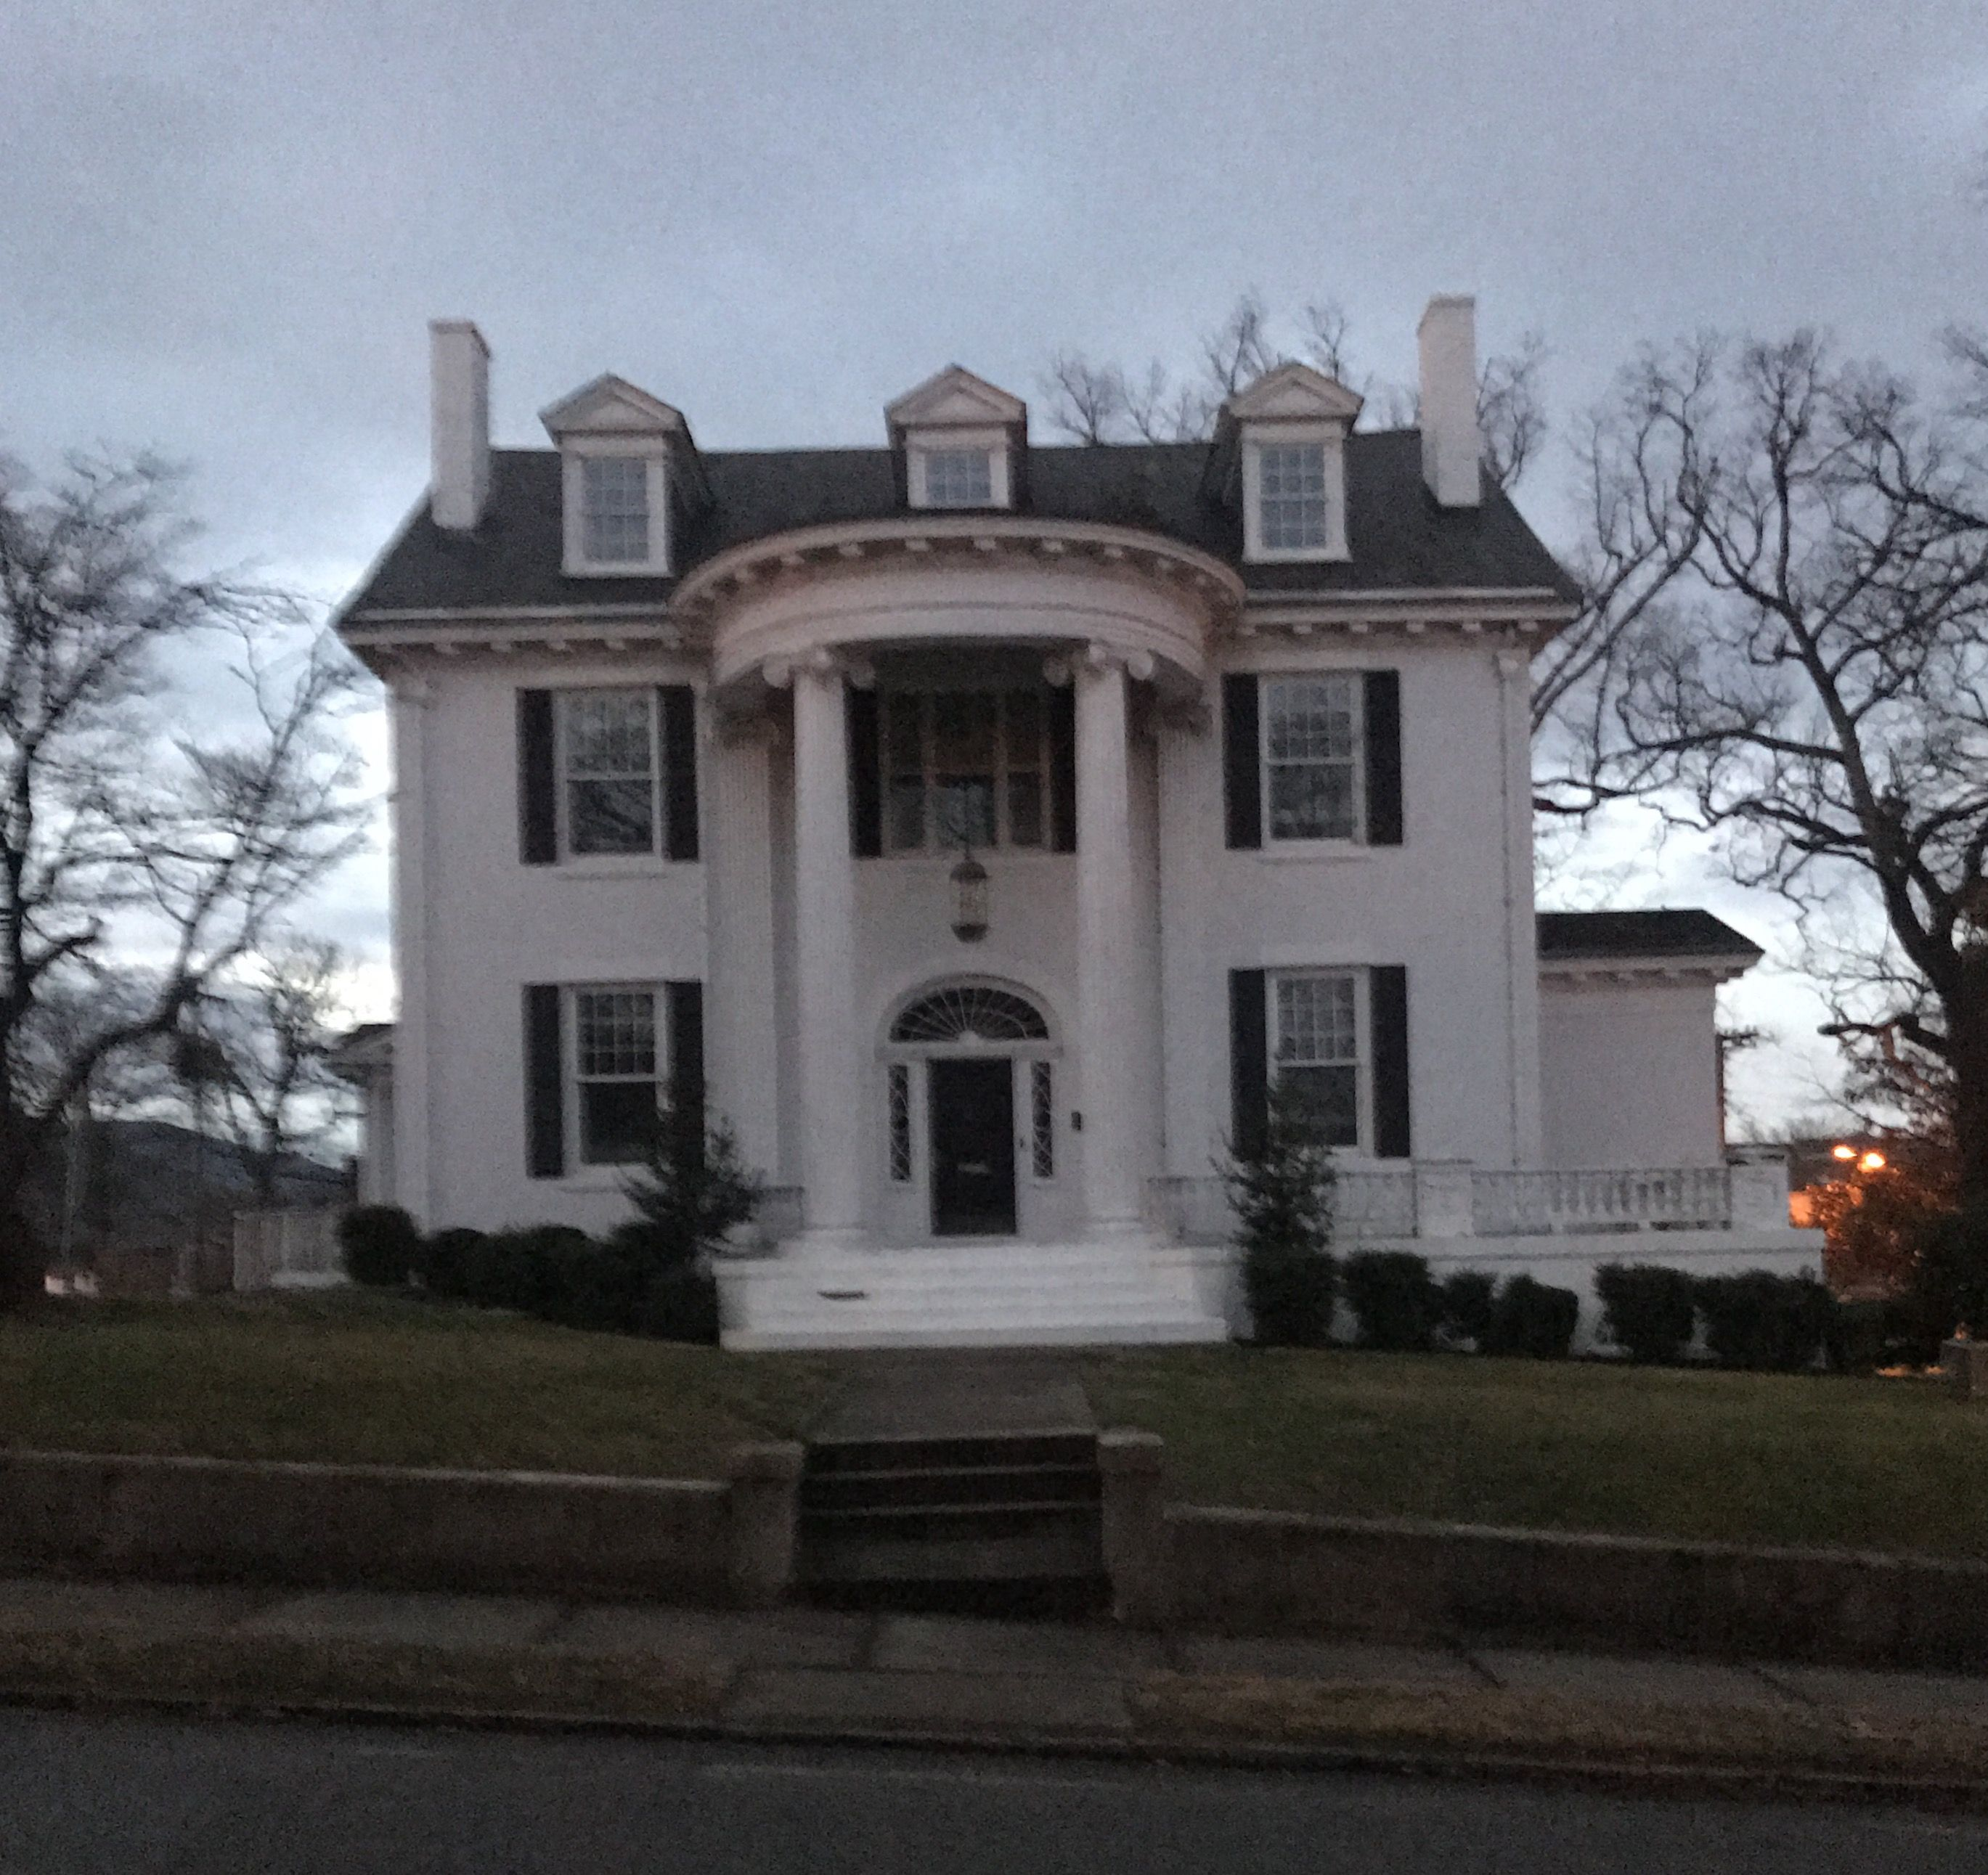 Known as the Boxly house this mansion is still impressive even if is an office building now.